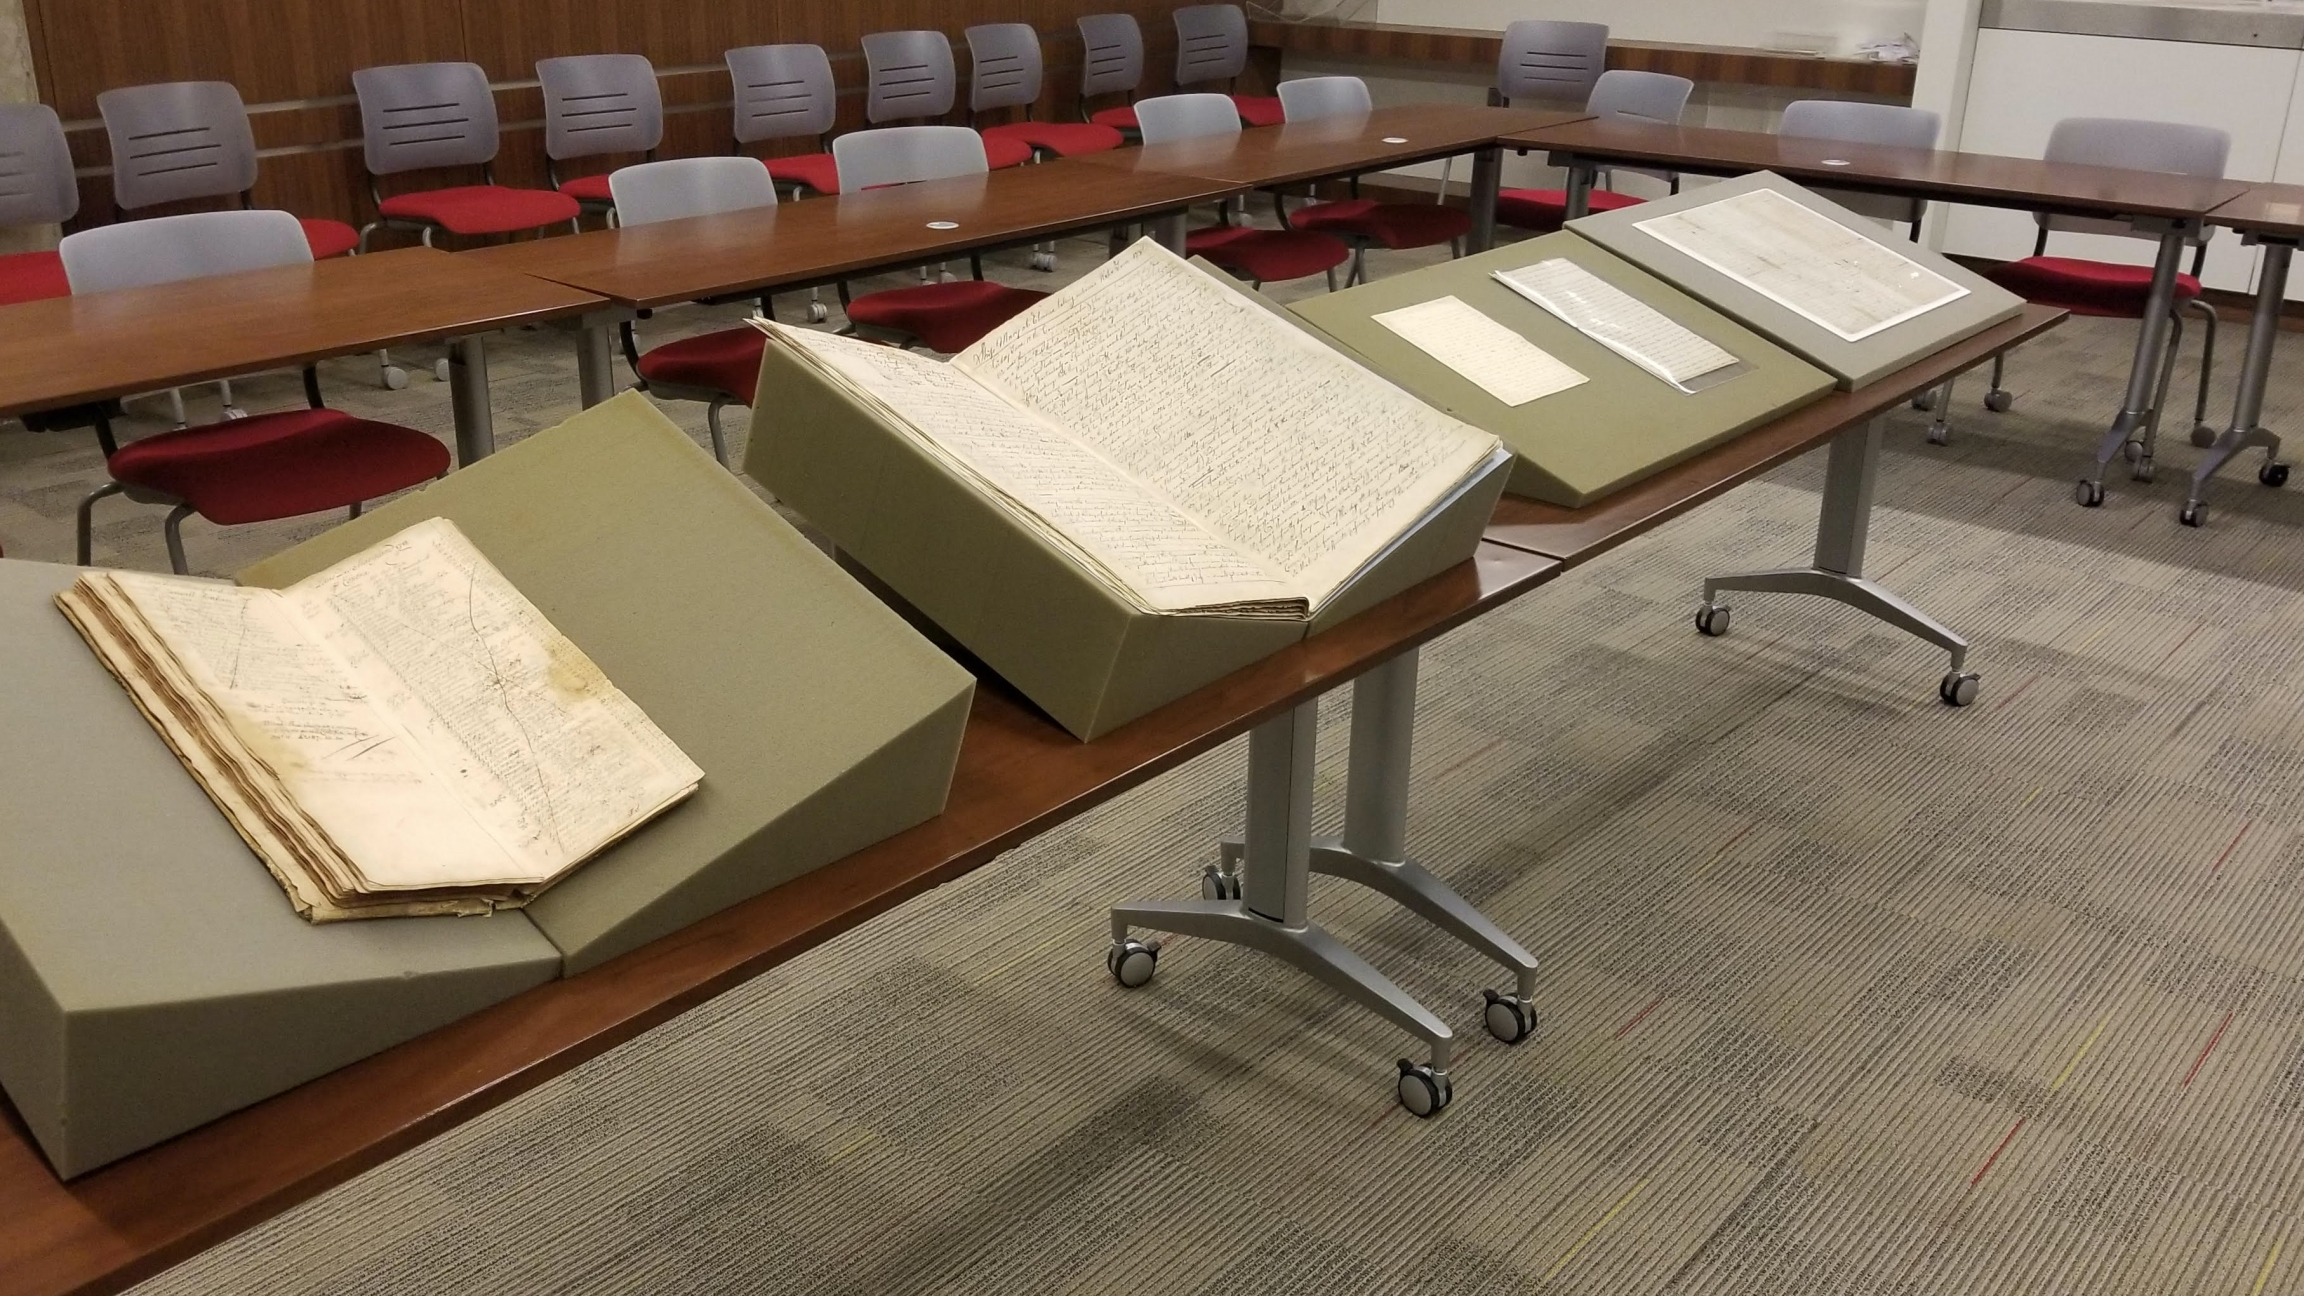 A 1795 logbook from the slave ship called the Mary is on display at Georgetown University Library.